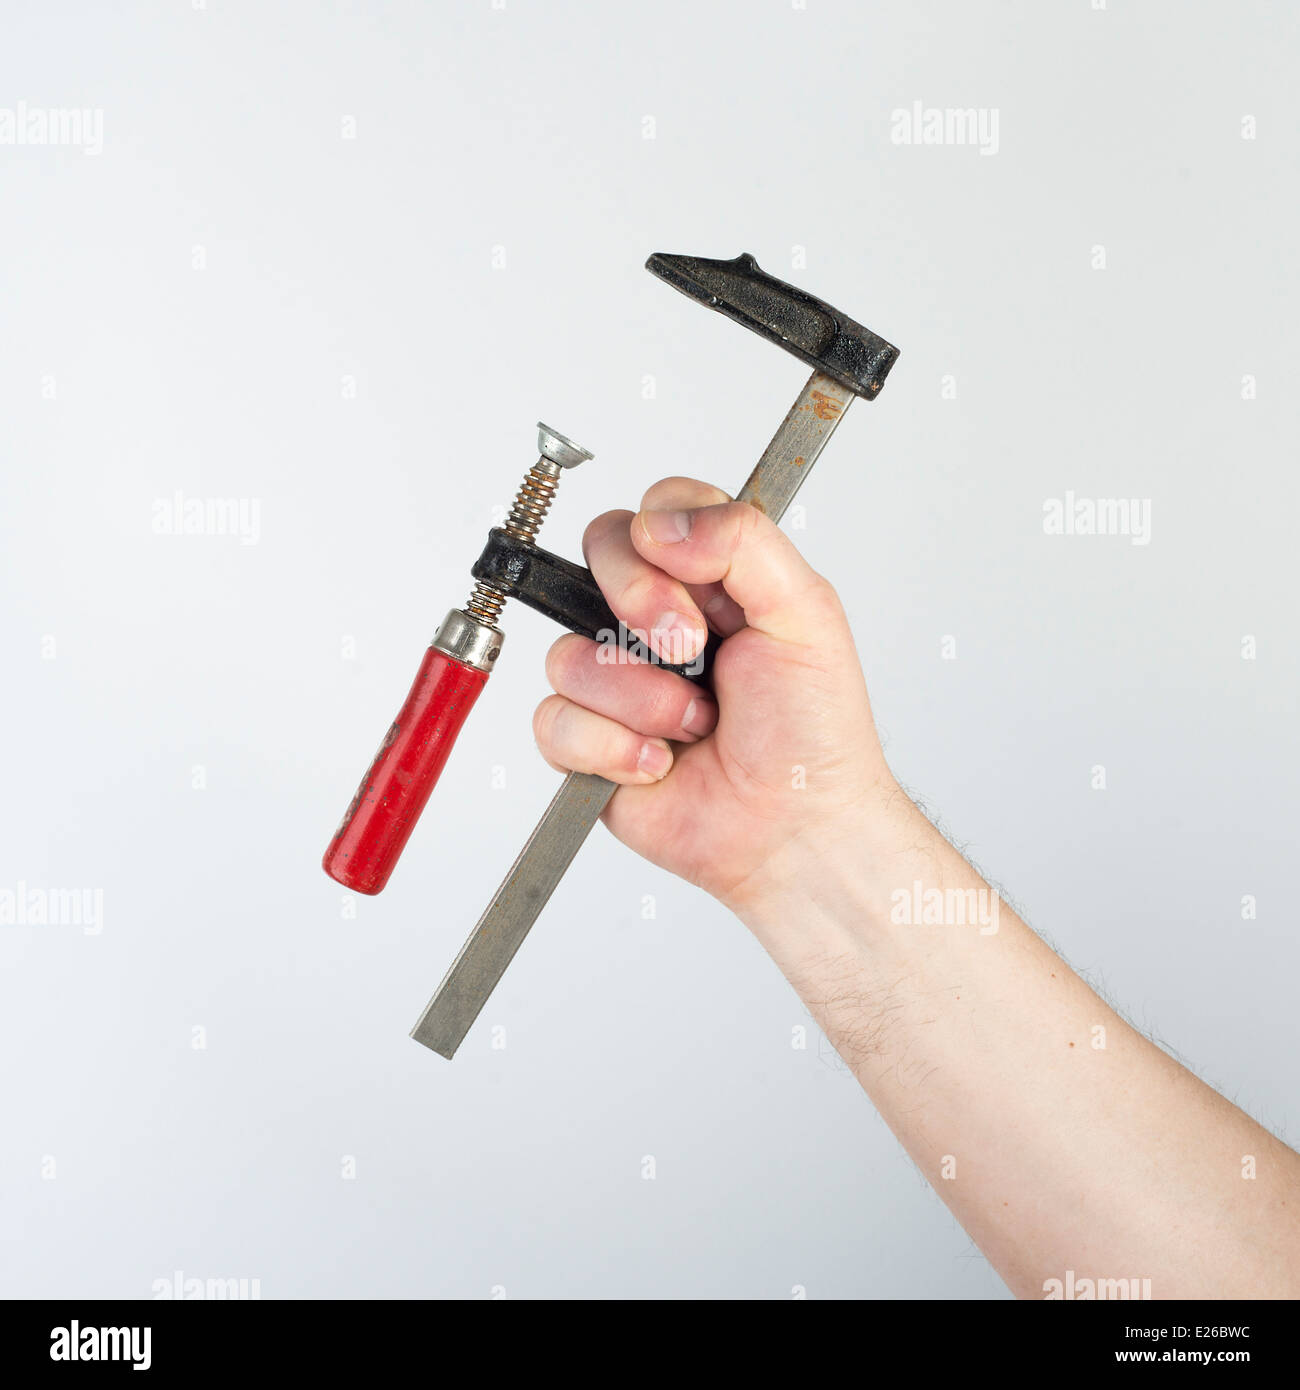 grip on hand - Stock Image